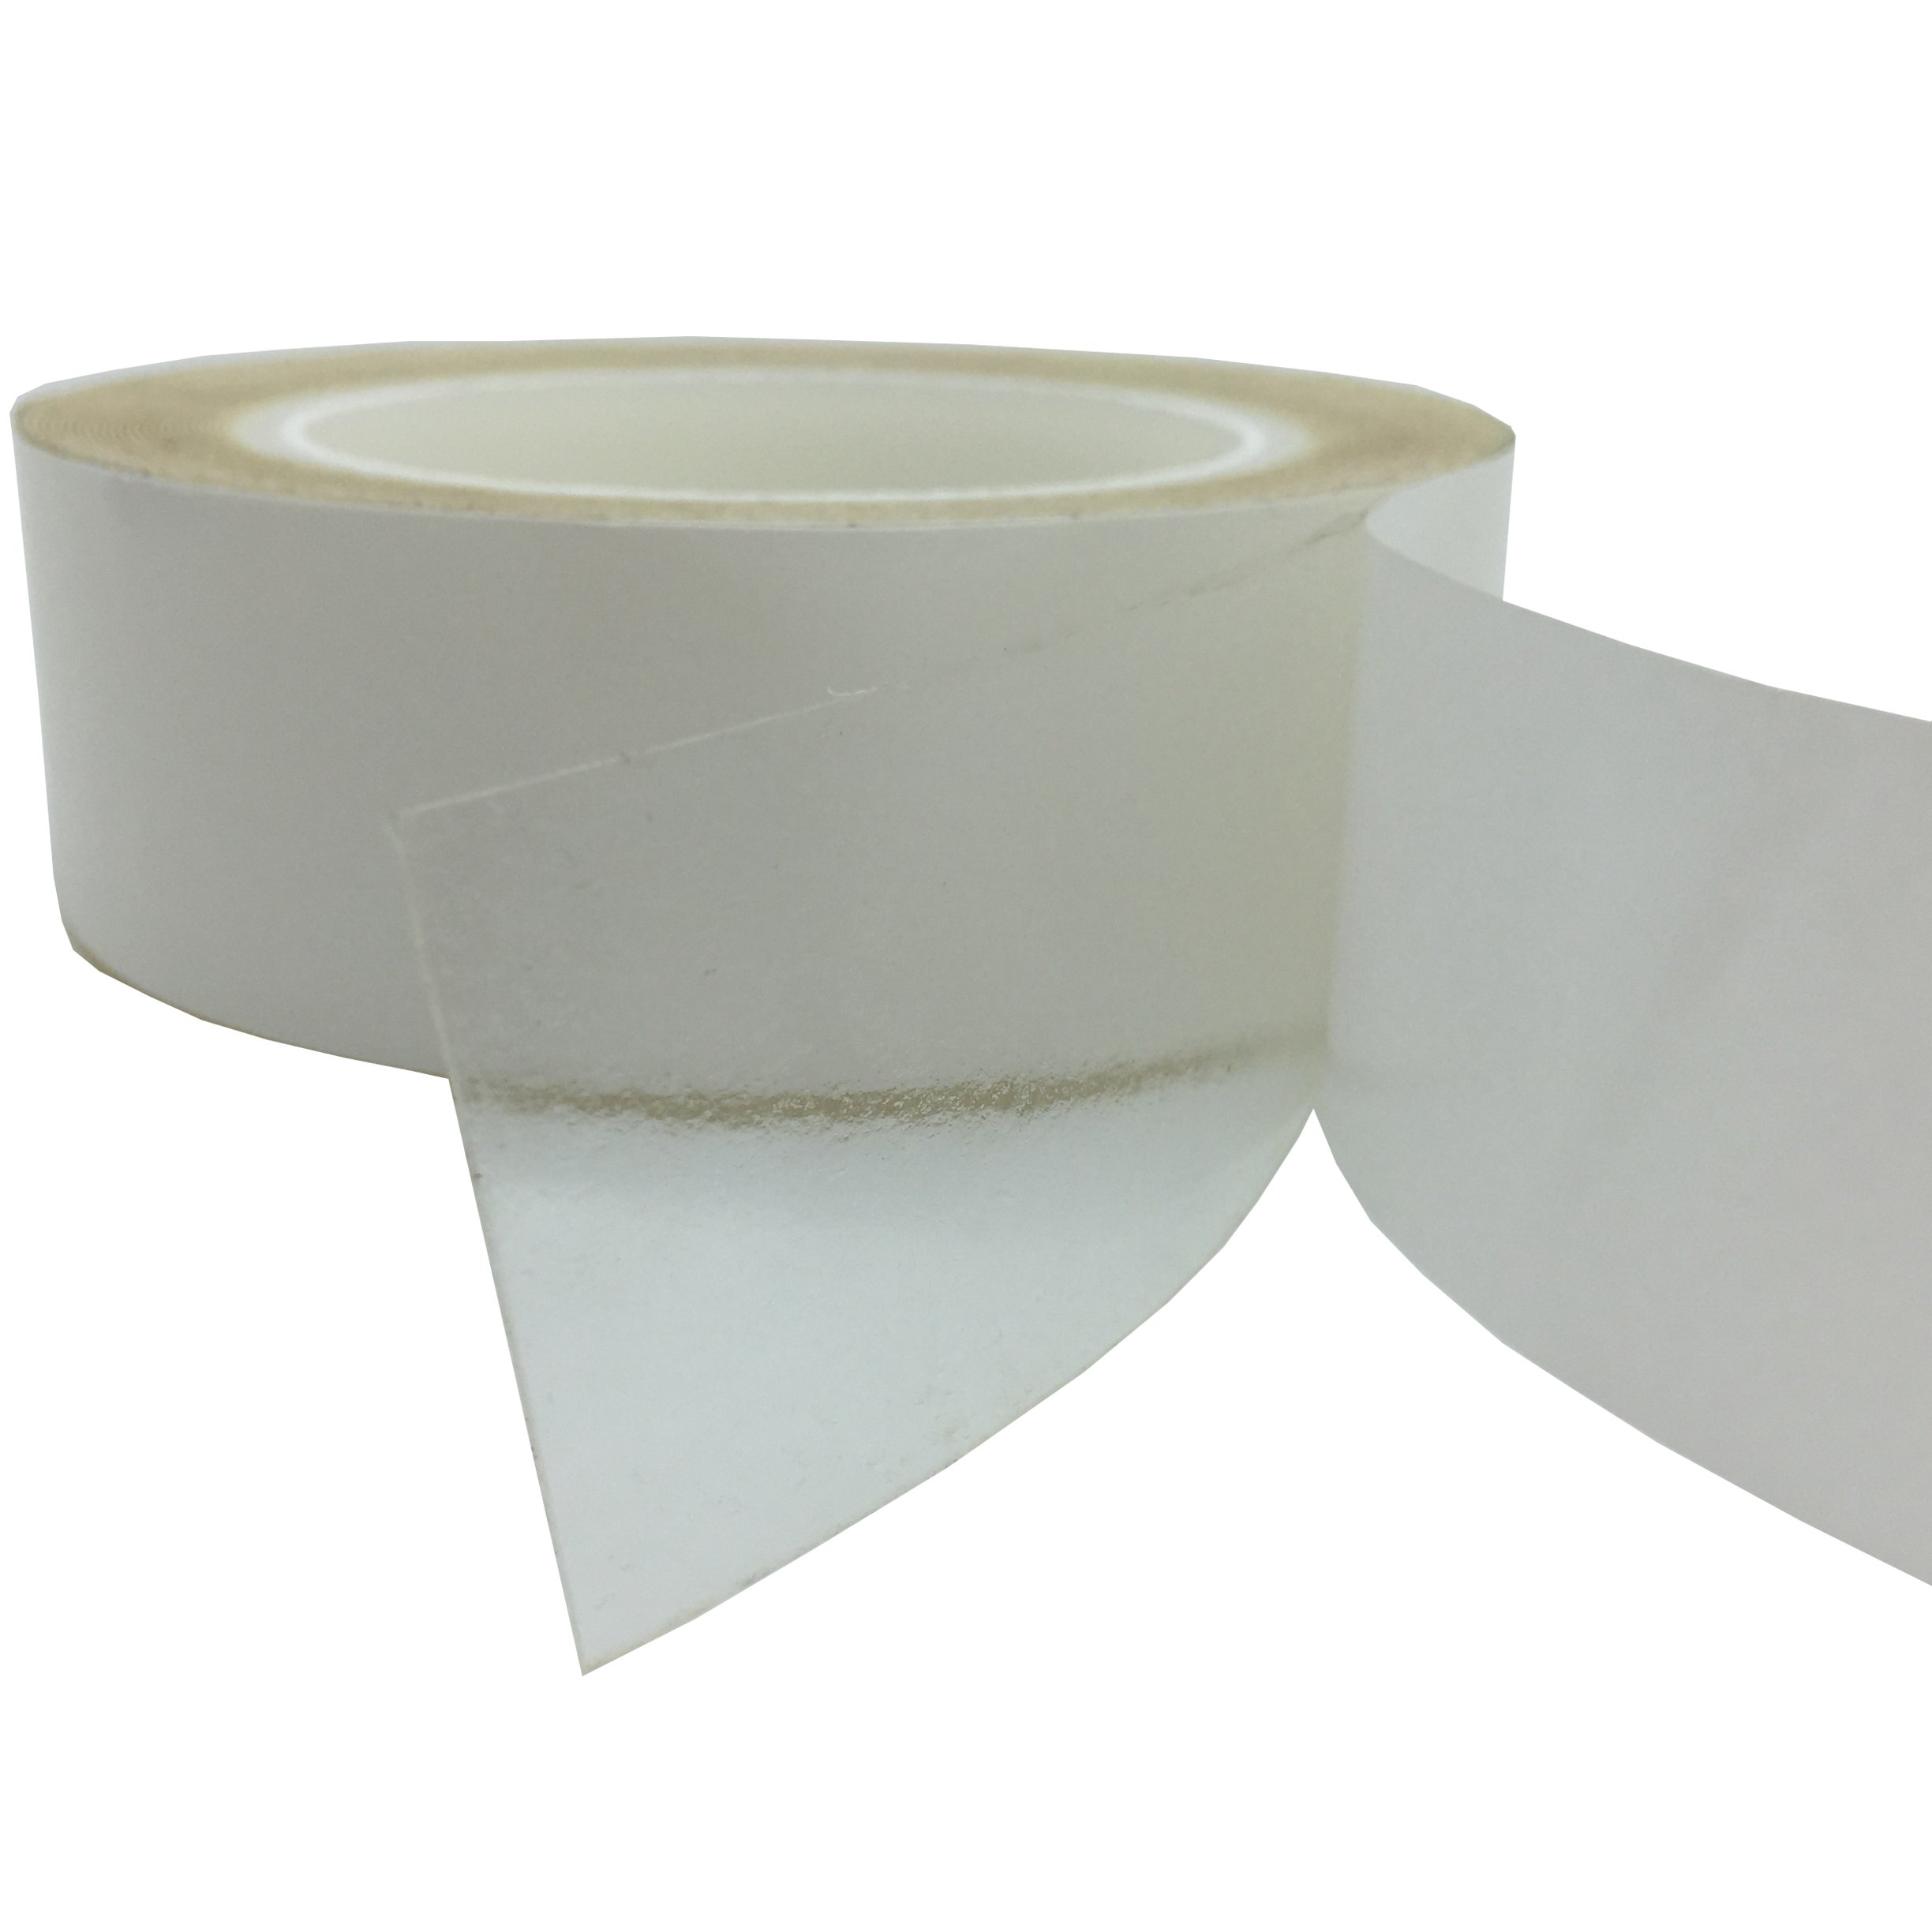 Double Sided Clear Mounting Tape Removable Heavy Duty, 1-inch Width x 33-Feet Length